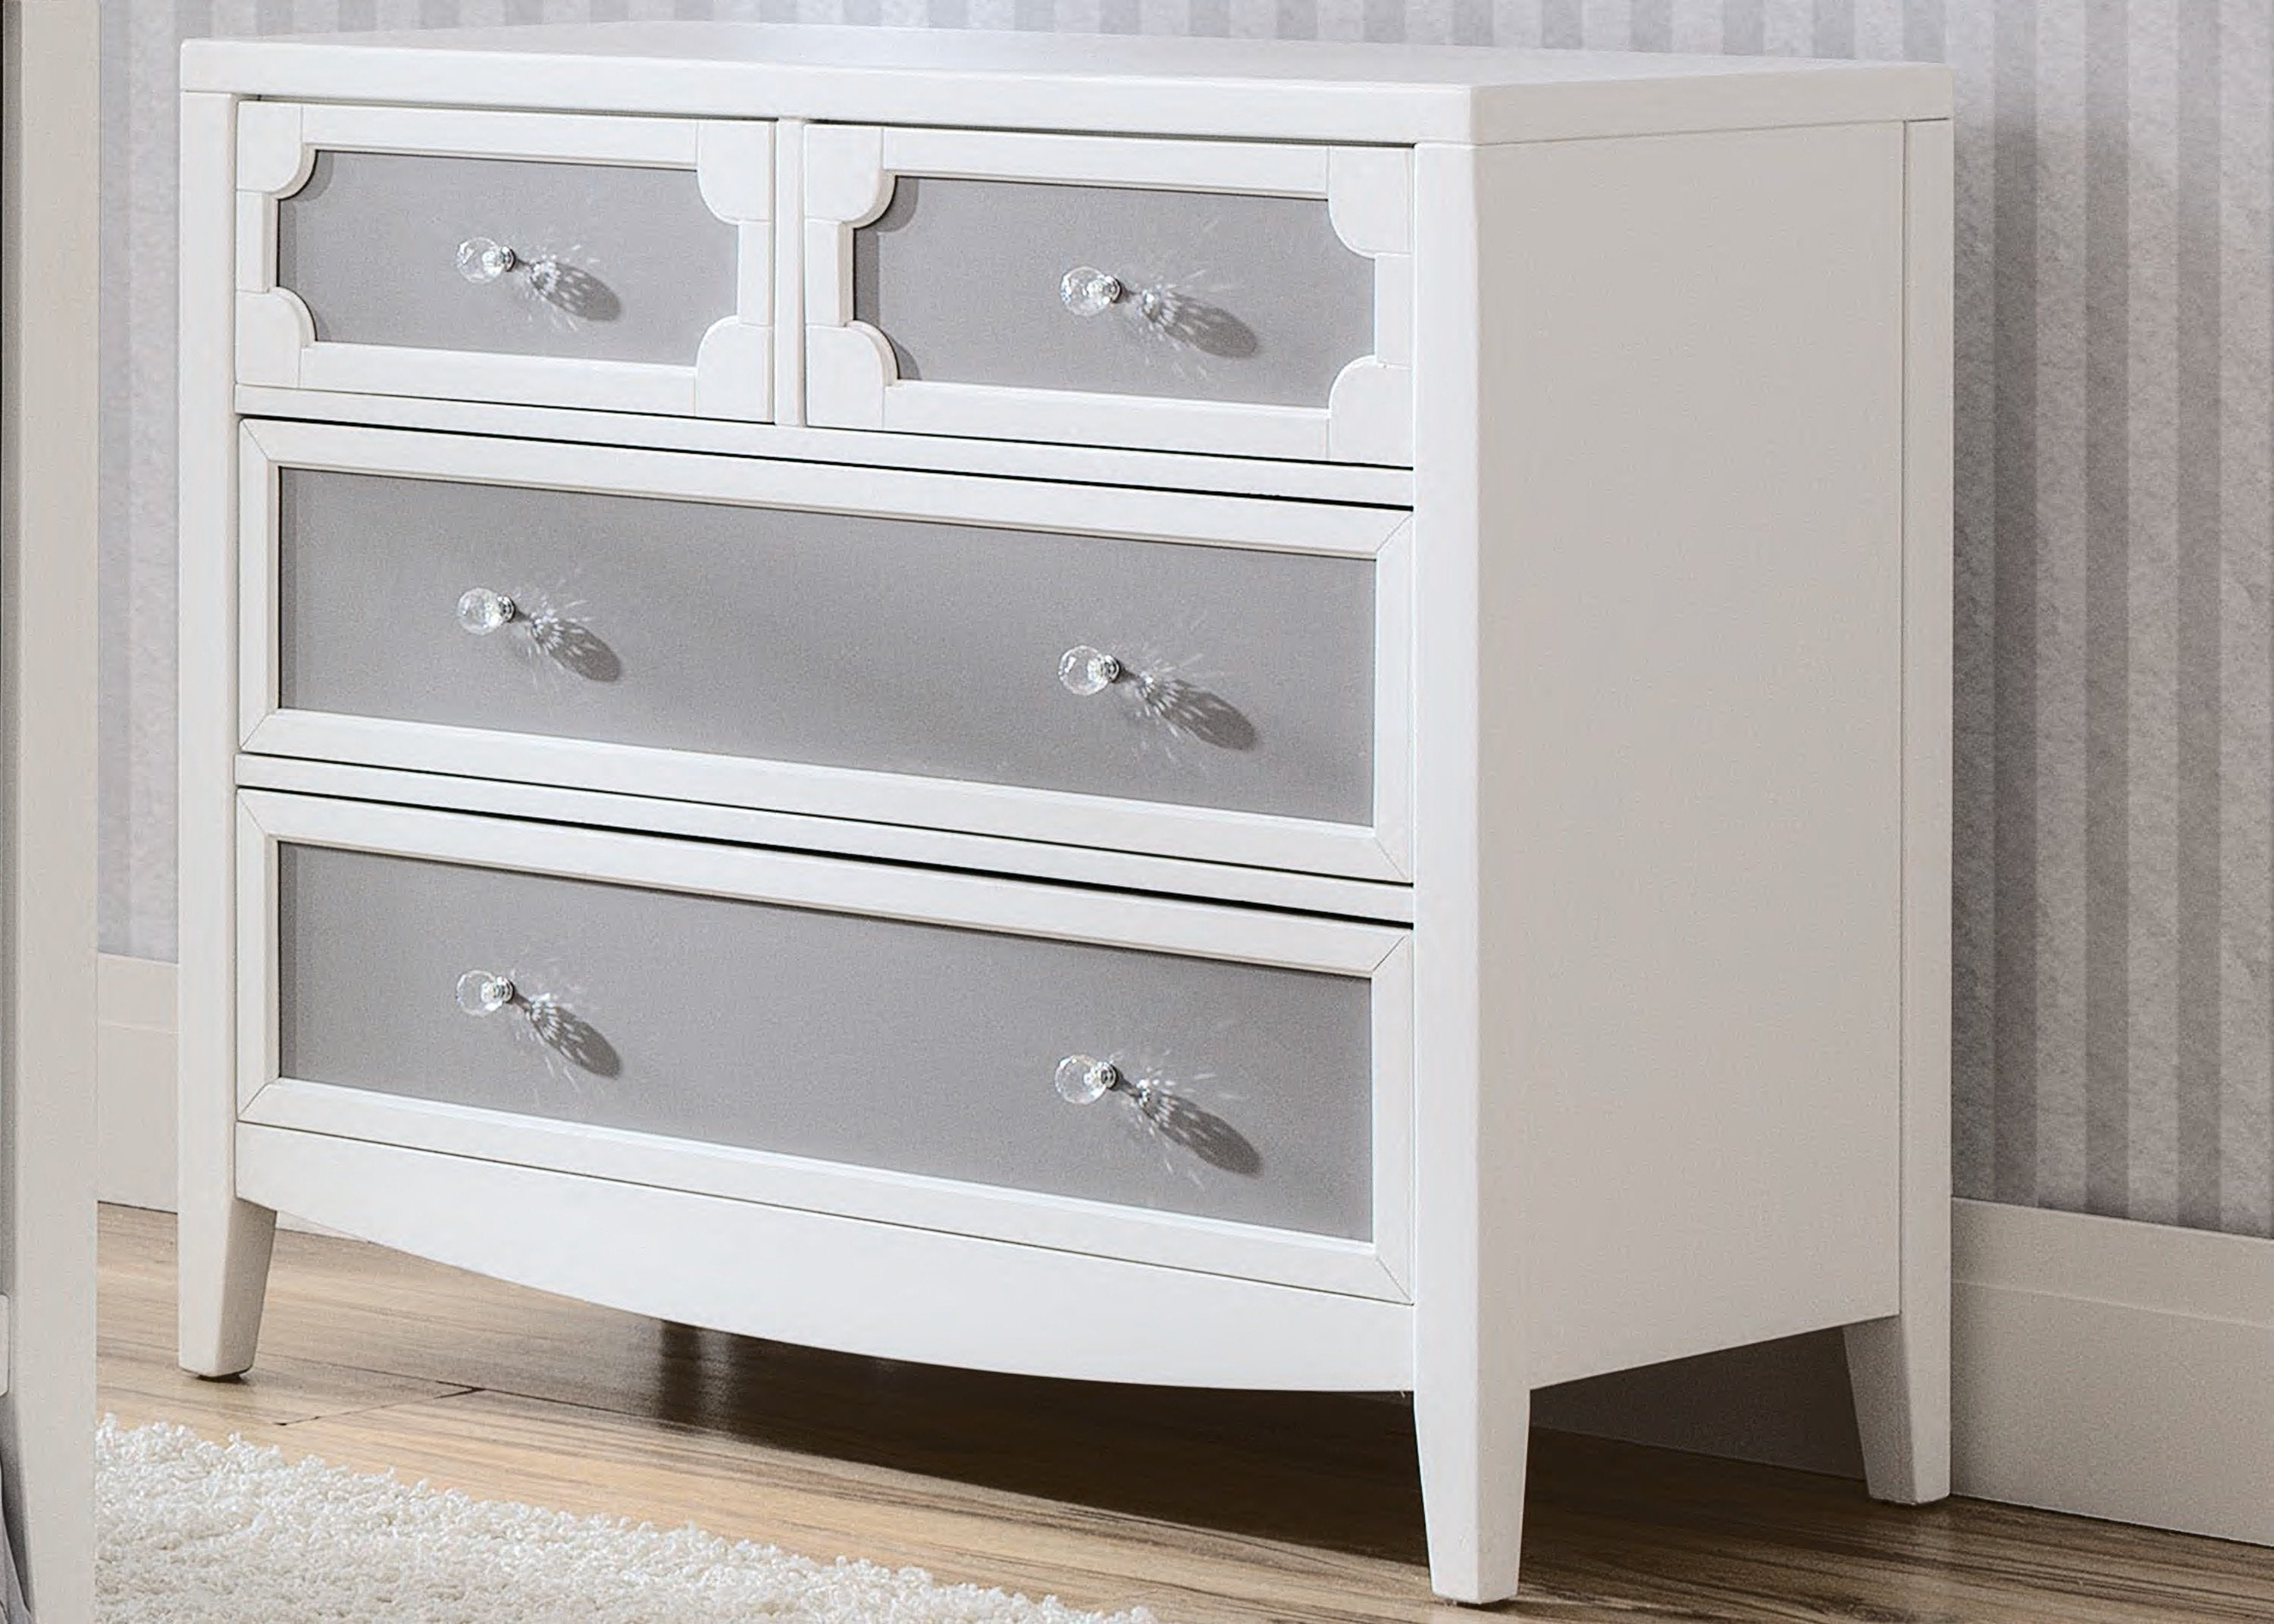 ip dresser com drawer of drawers multiple colors mainstays walmart chests